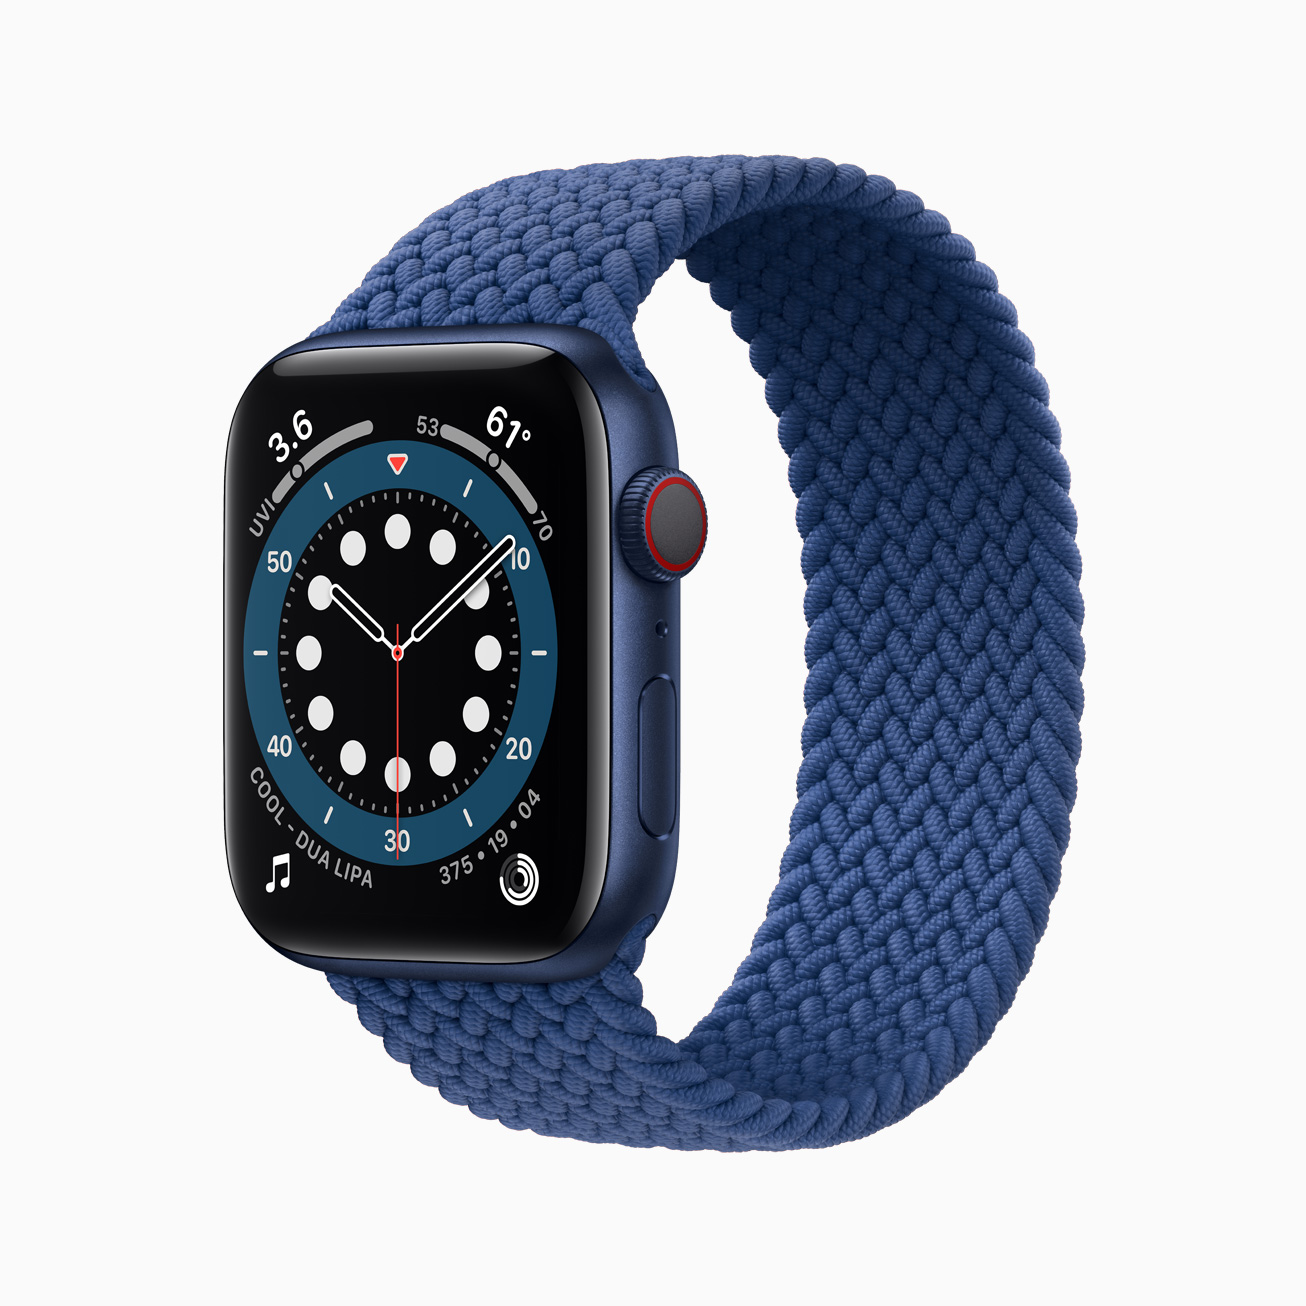 Apple watch-series-6-aluminum-blue-case 09152020 carousel.jpg.large 2x